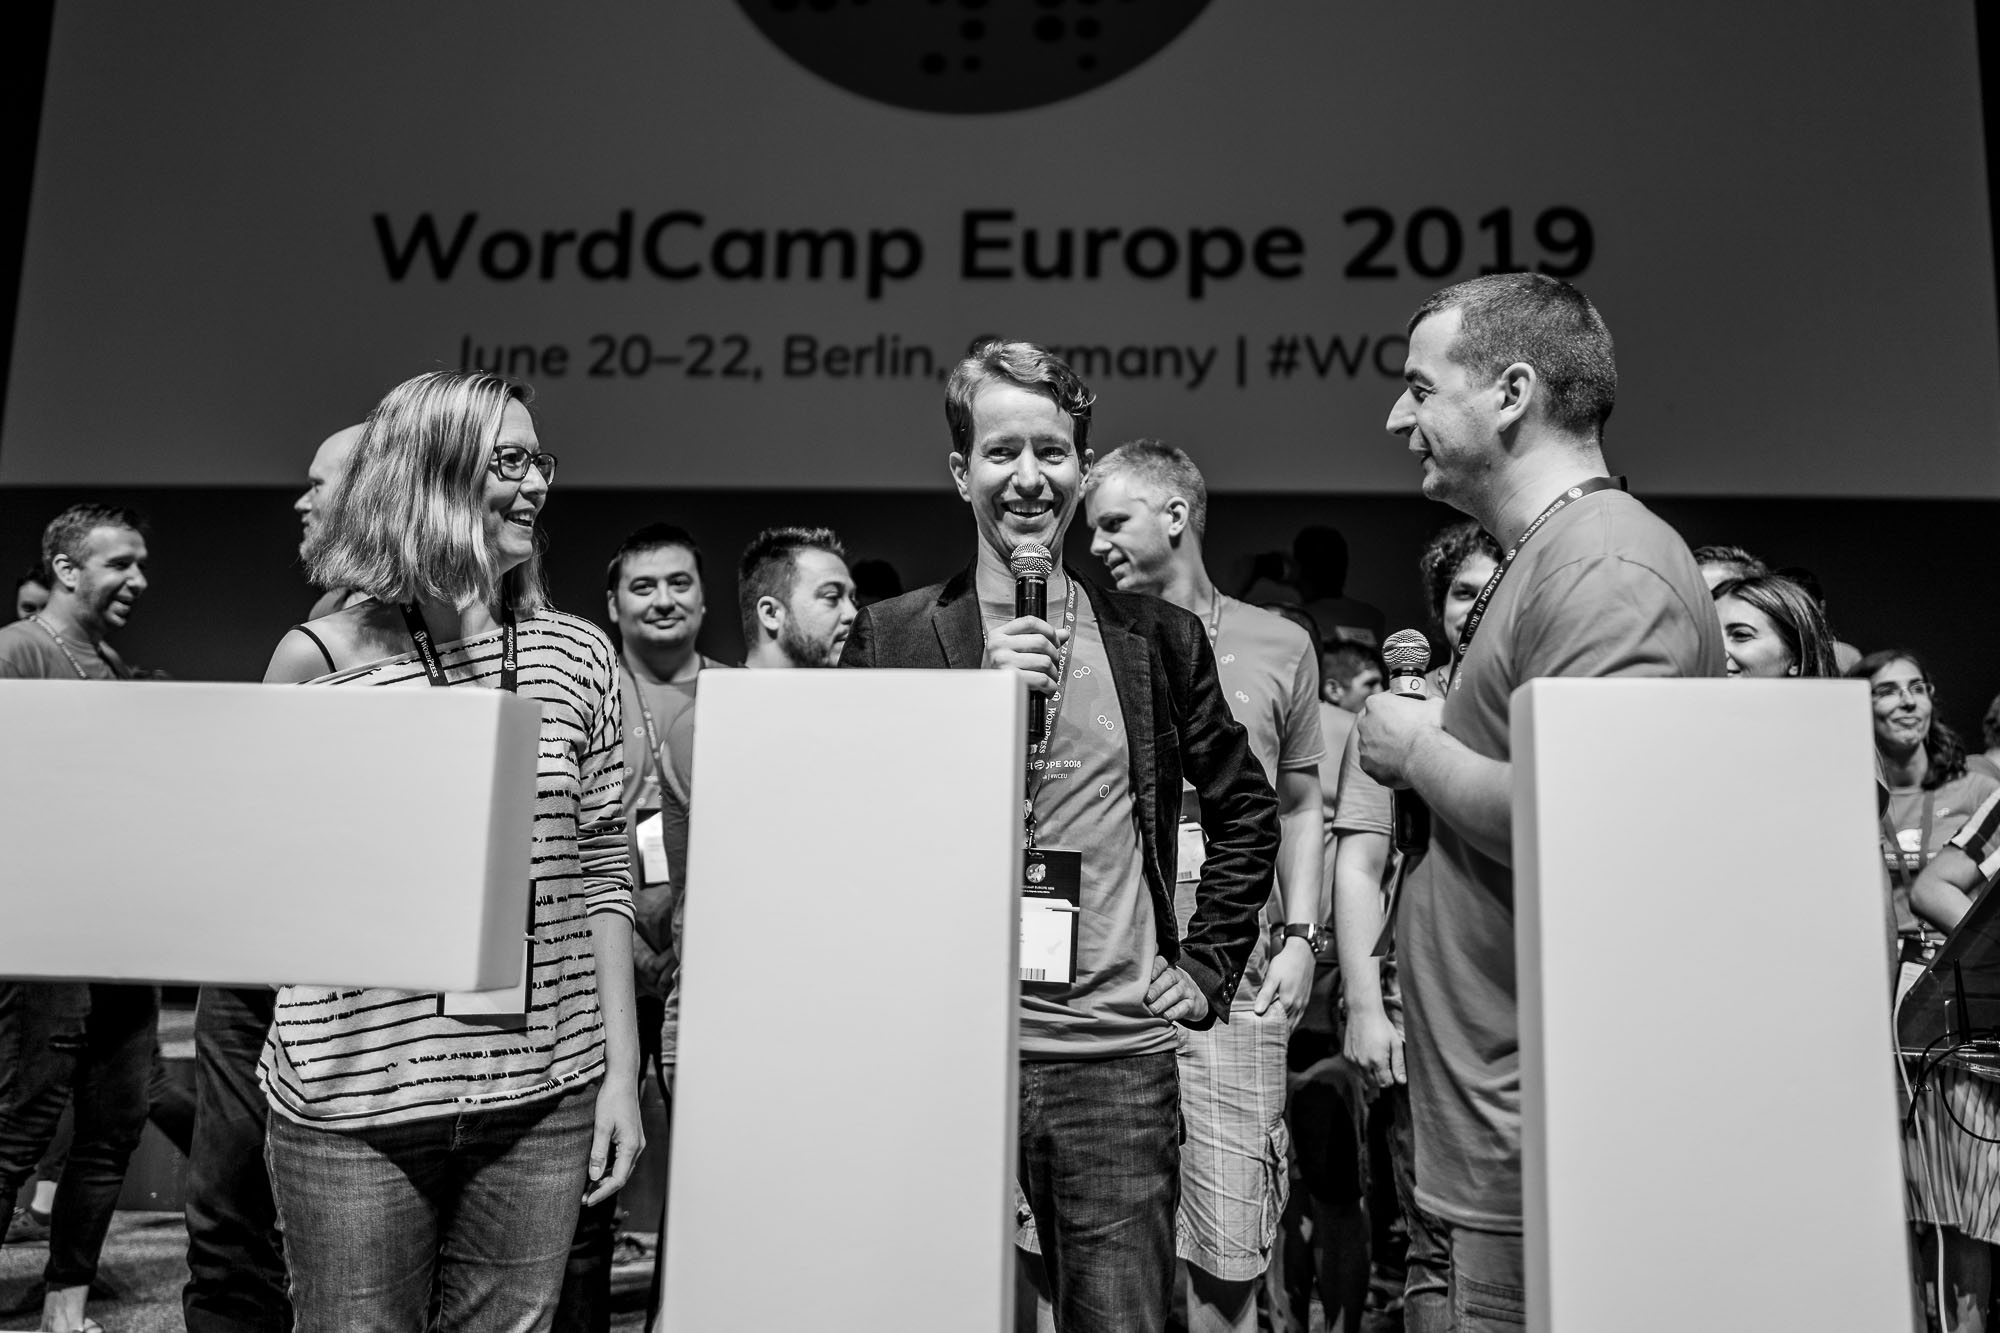 Jenny, Bernhard and Milan behind the WCEU hashtag with microphones